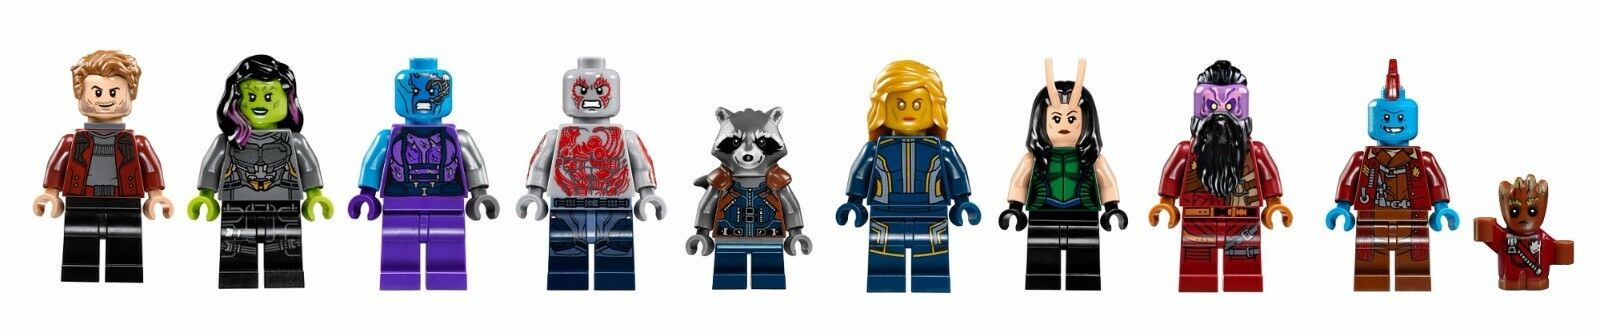 LEGO 76079, 76080, 76081 - Super Heroes Guardians of the Galaxy Vol.2 - Minifigs